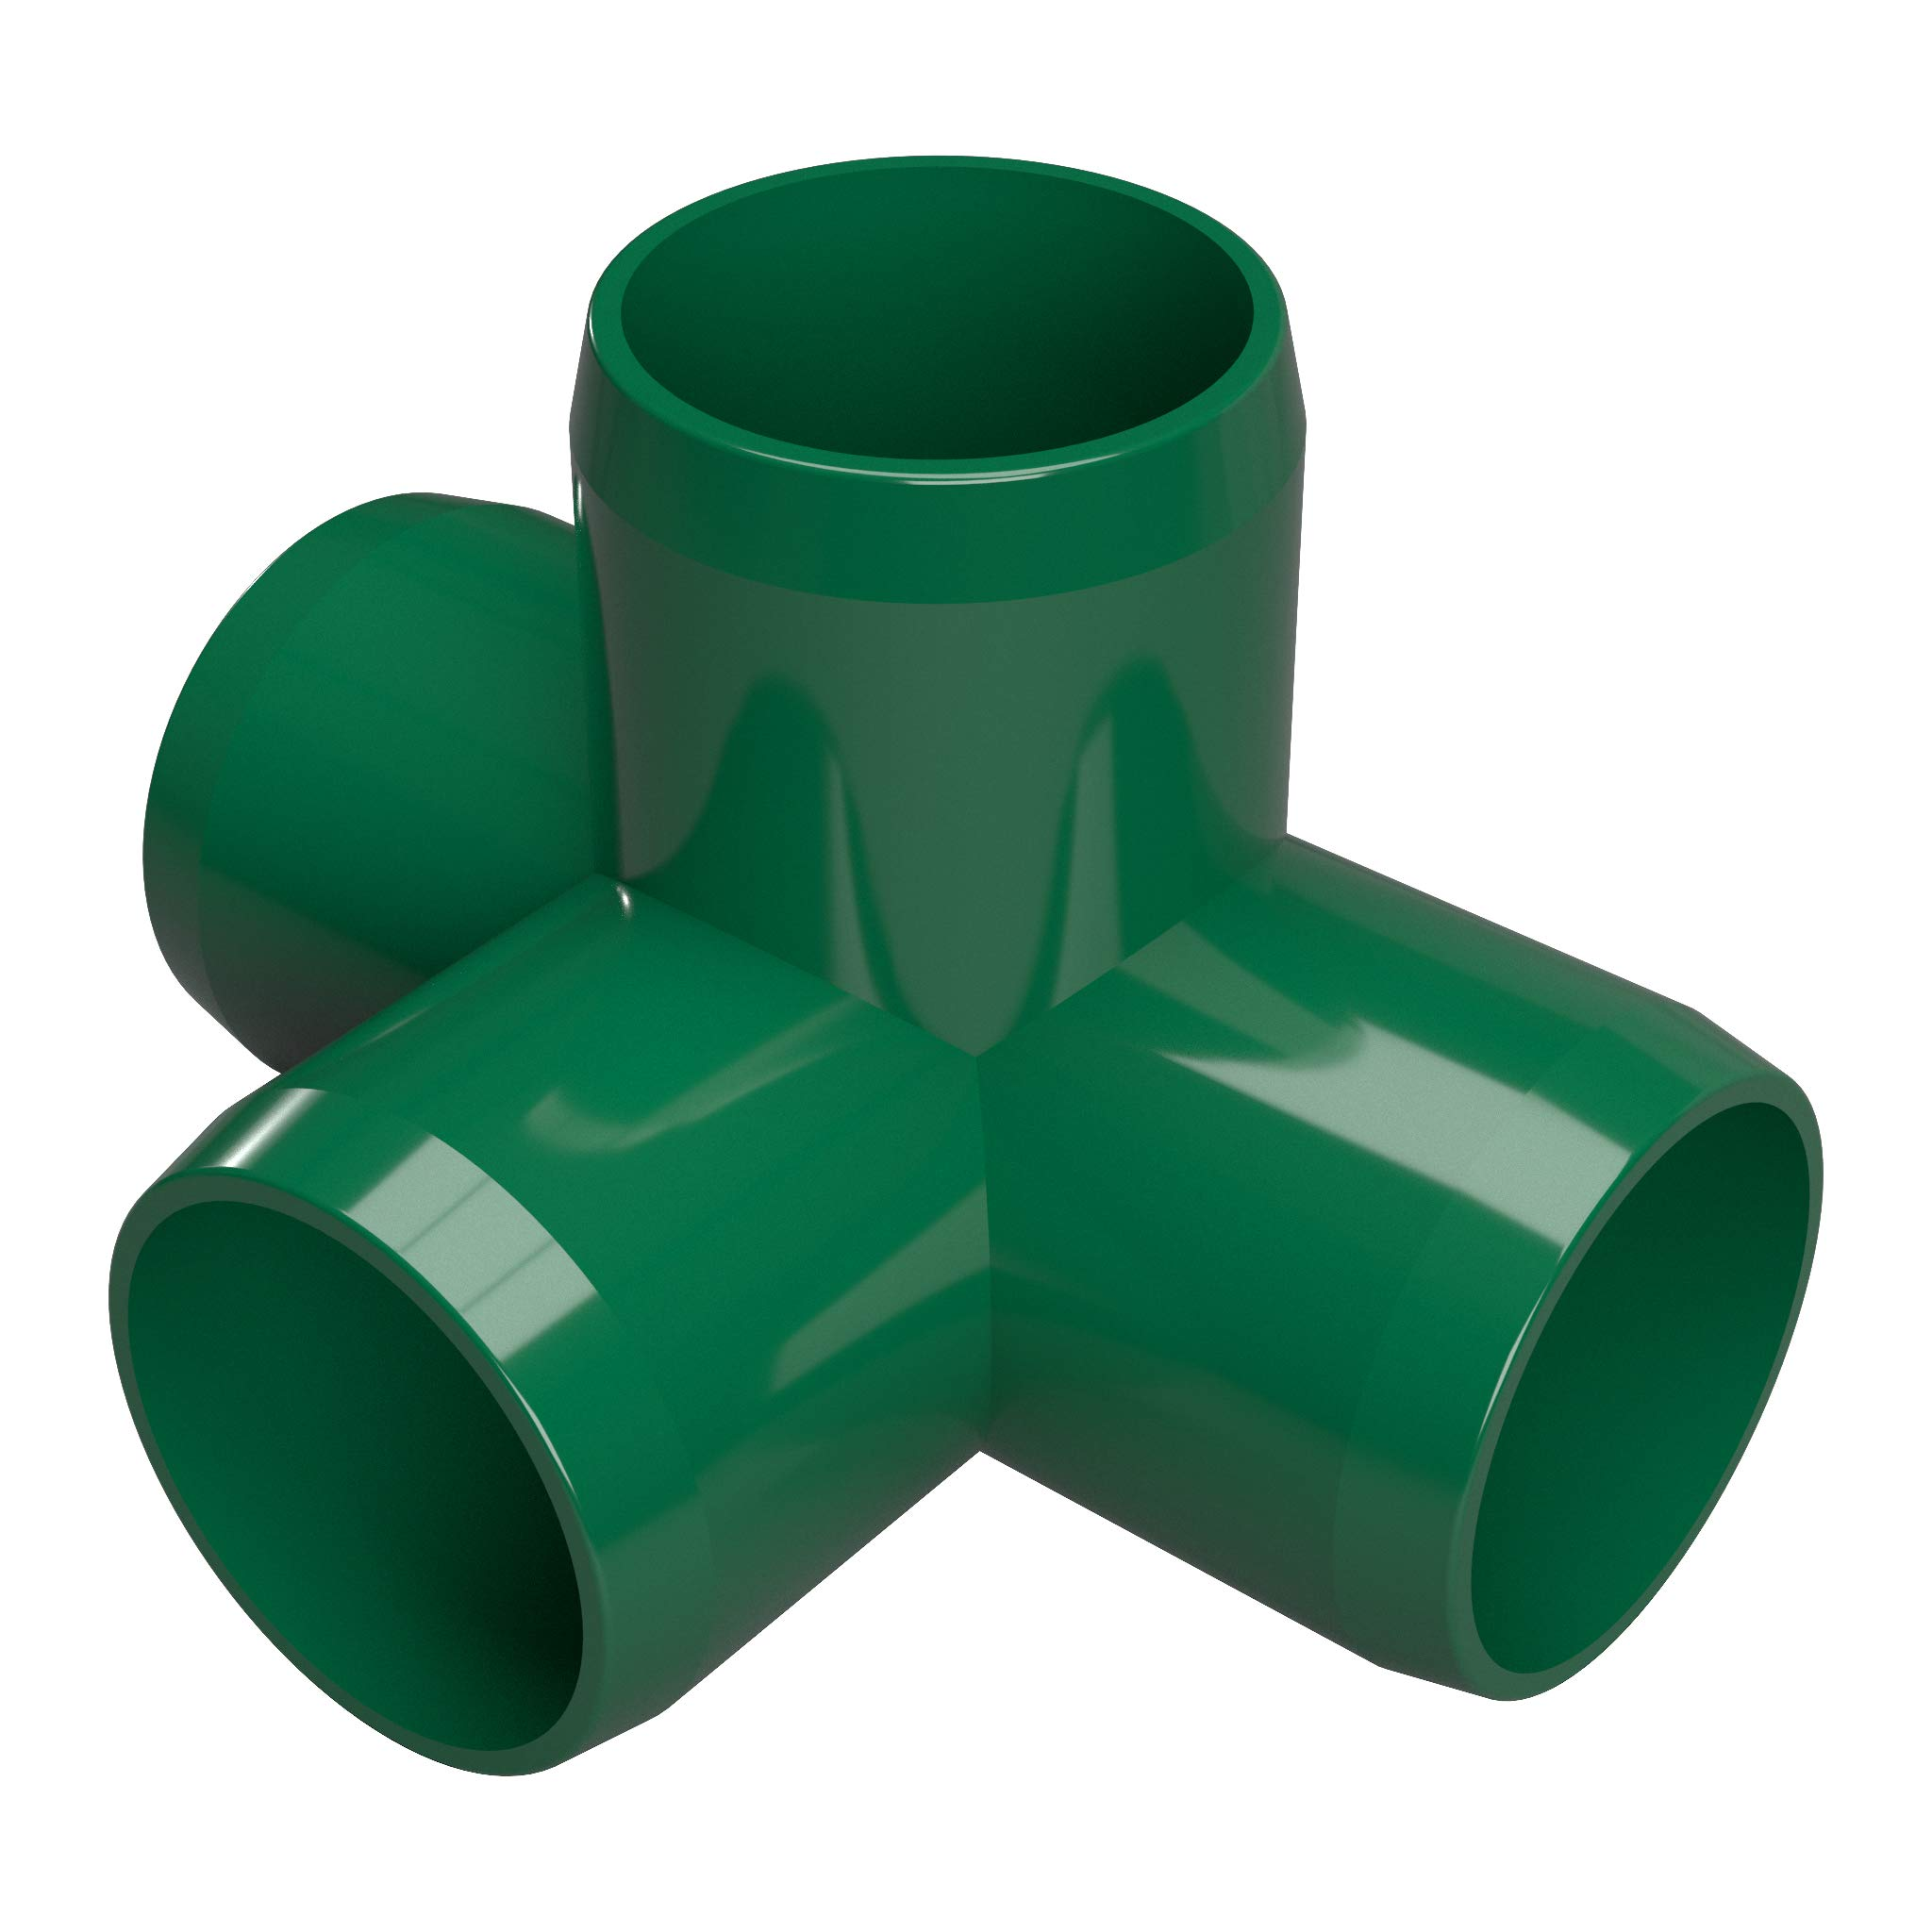 FORMUFIT F1144WT-GR-4 4-Way Tee PVC Fitting, Furniture Grade, 1-1/4'' Size, Green (Pack of 4) by FORMUFIT (Image #1)